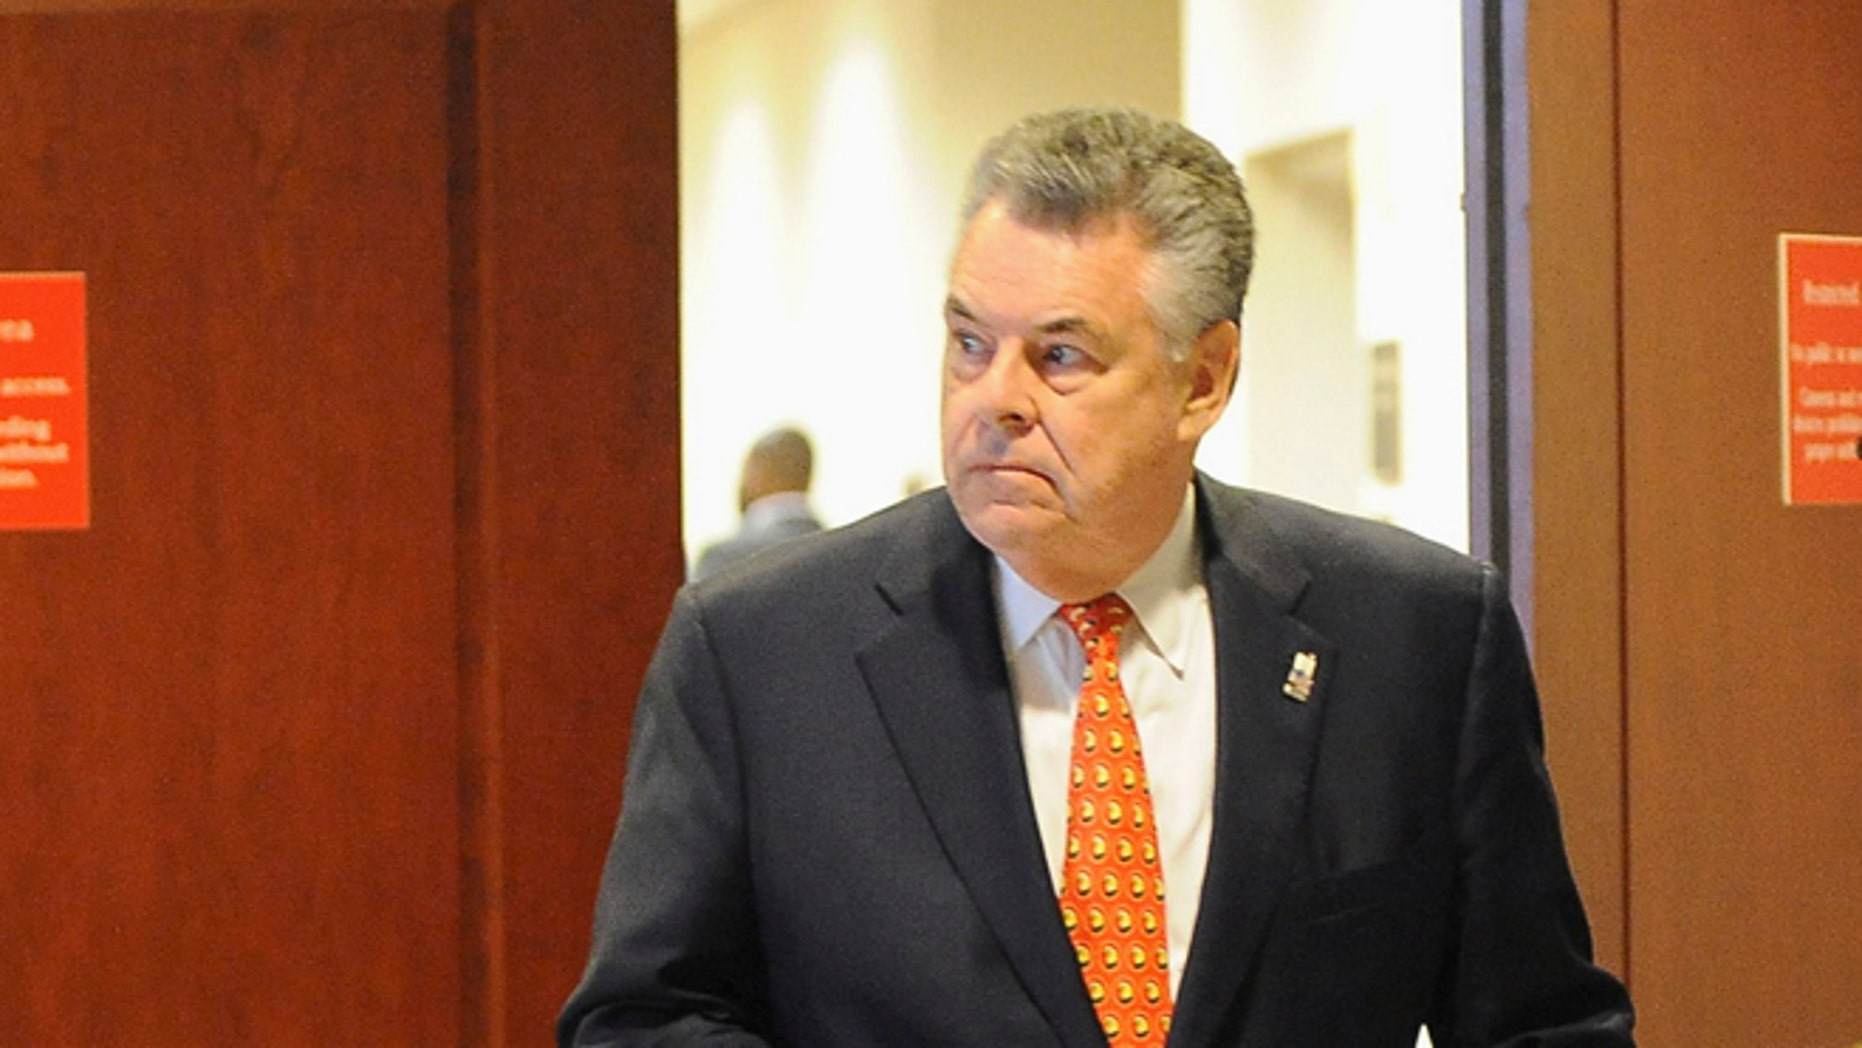 FILE: Nov. 16, 2012: Rep. Peter King, R-N.Y., on Capitol Hill, in Washington, D.C.